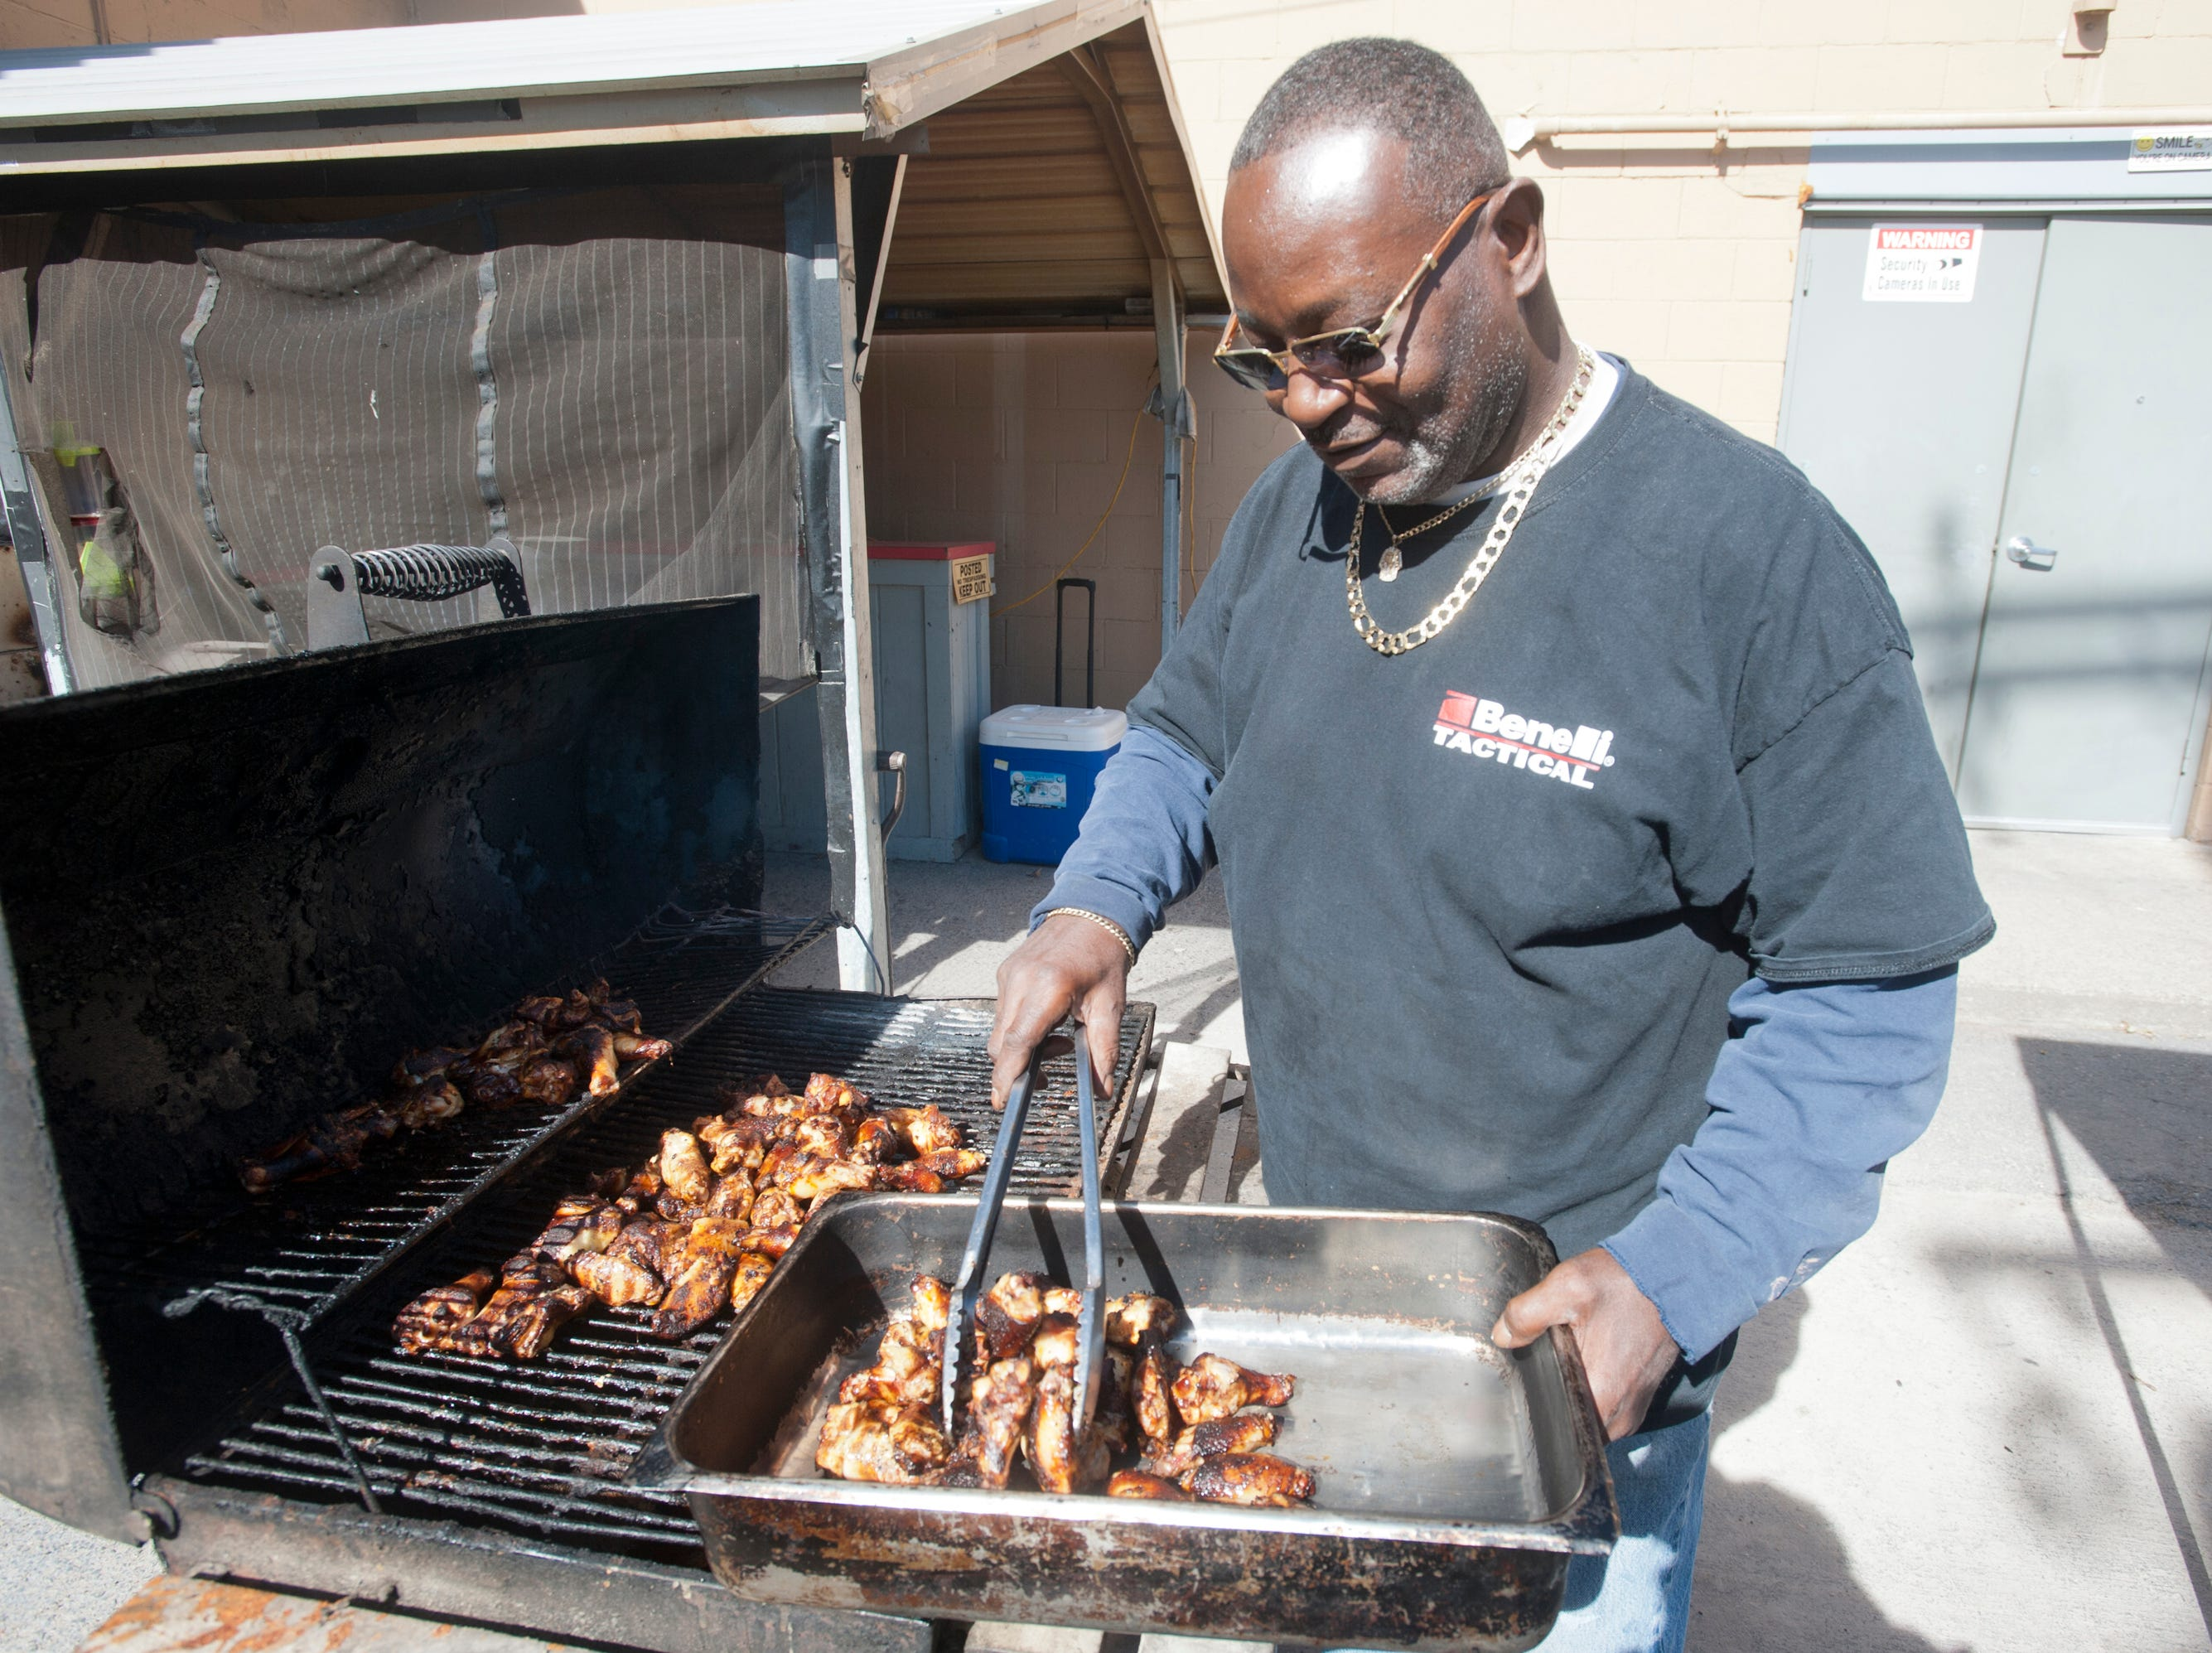 Babie Bac'z Good Grill's co-owner Michael Russell cooks up some barbecued chicken on one of his specialized grills in the back of the restaurant. October 24, 2018